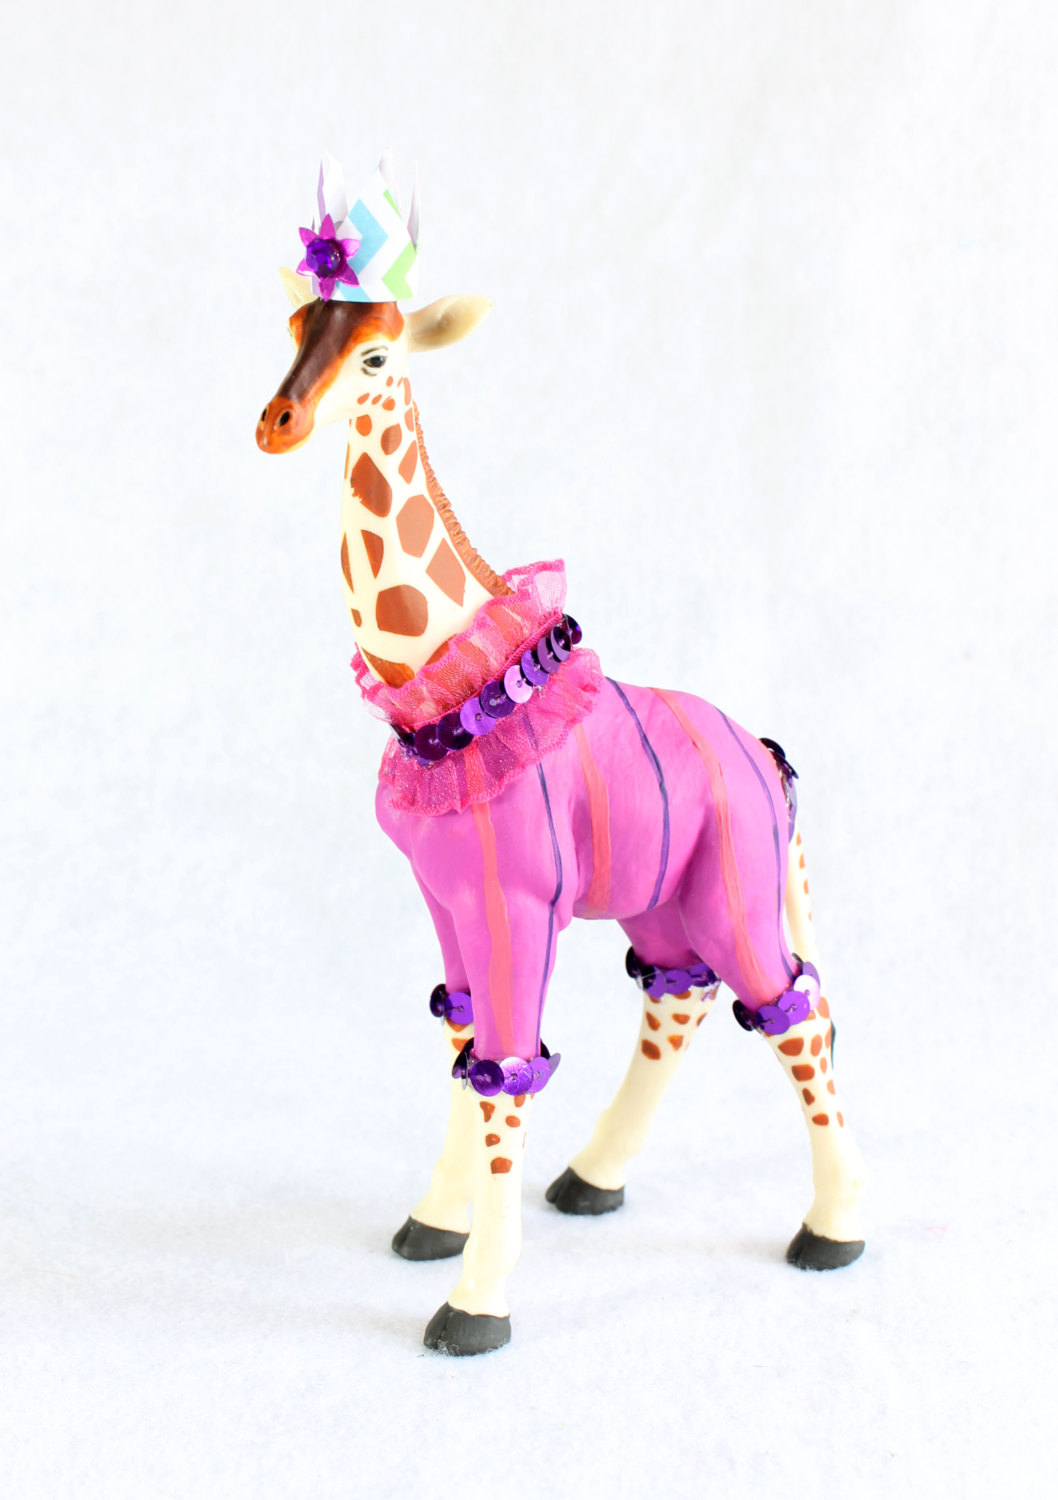 Giraffe Circus Cake Topper / Hand Painted Giraffe Birthday Party Decoration from Painted Parade / see more on www.GiggleHearts.com